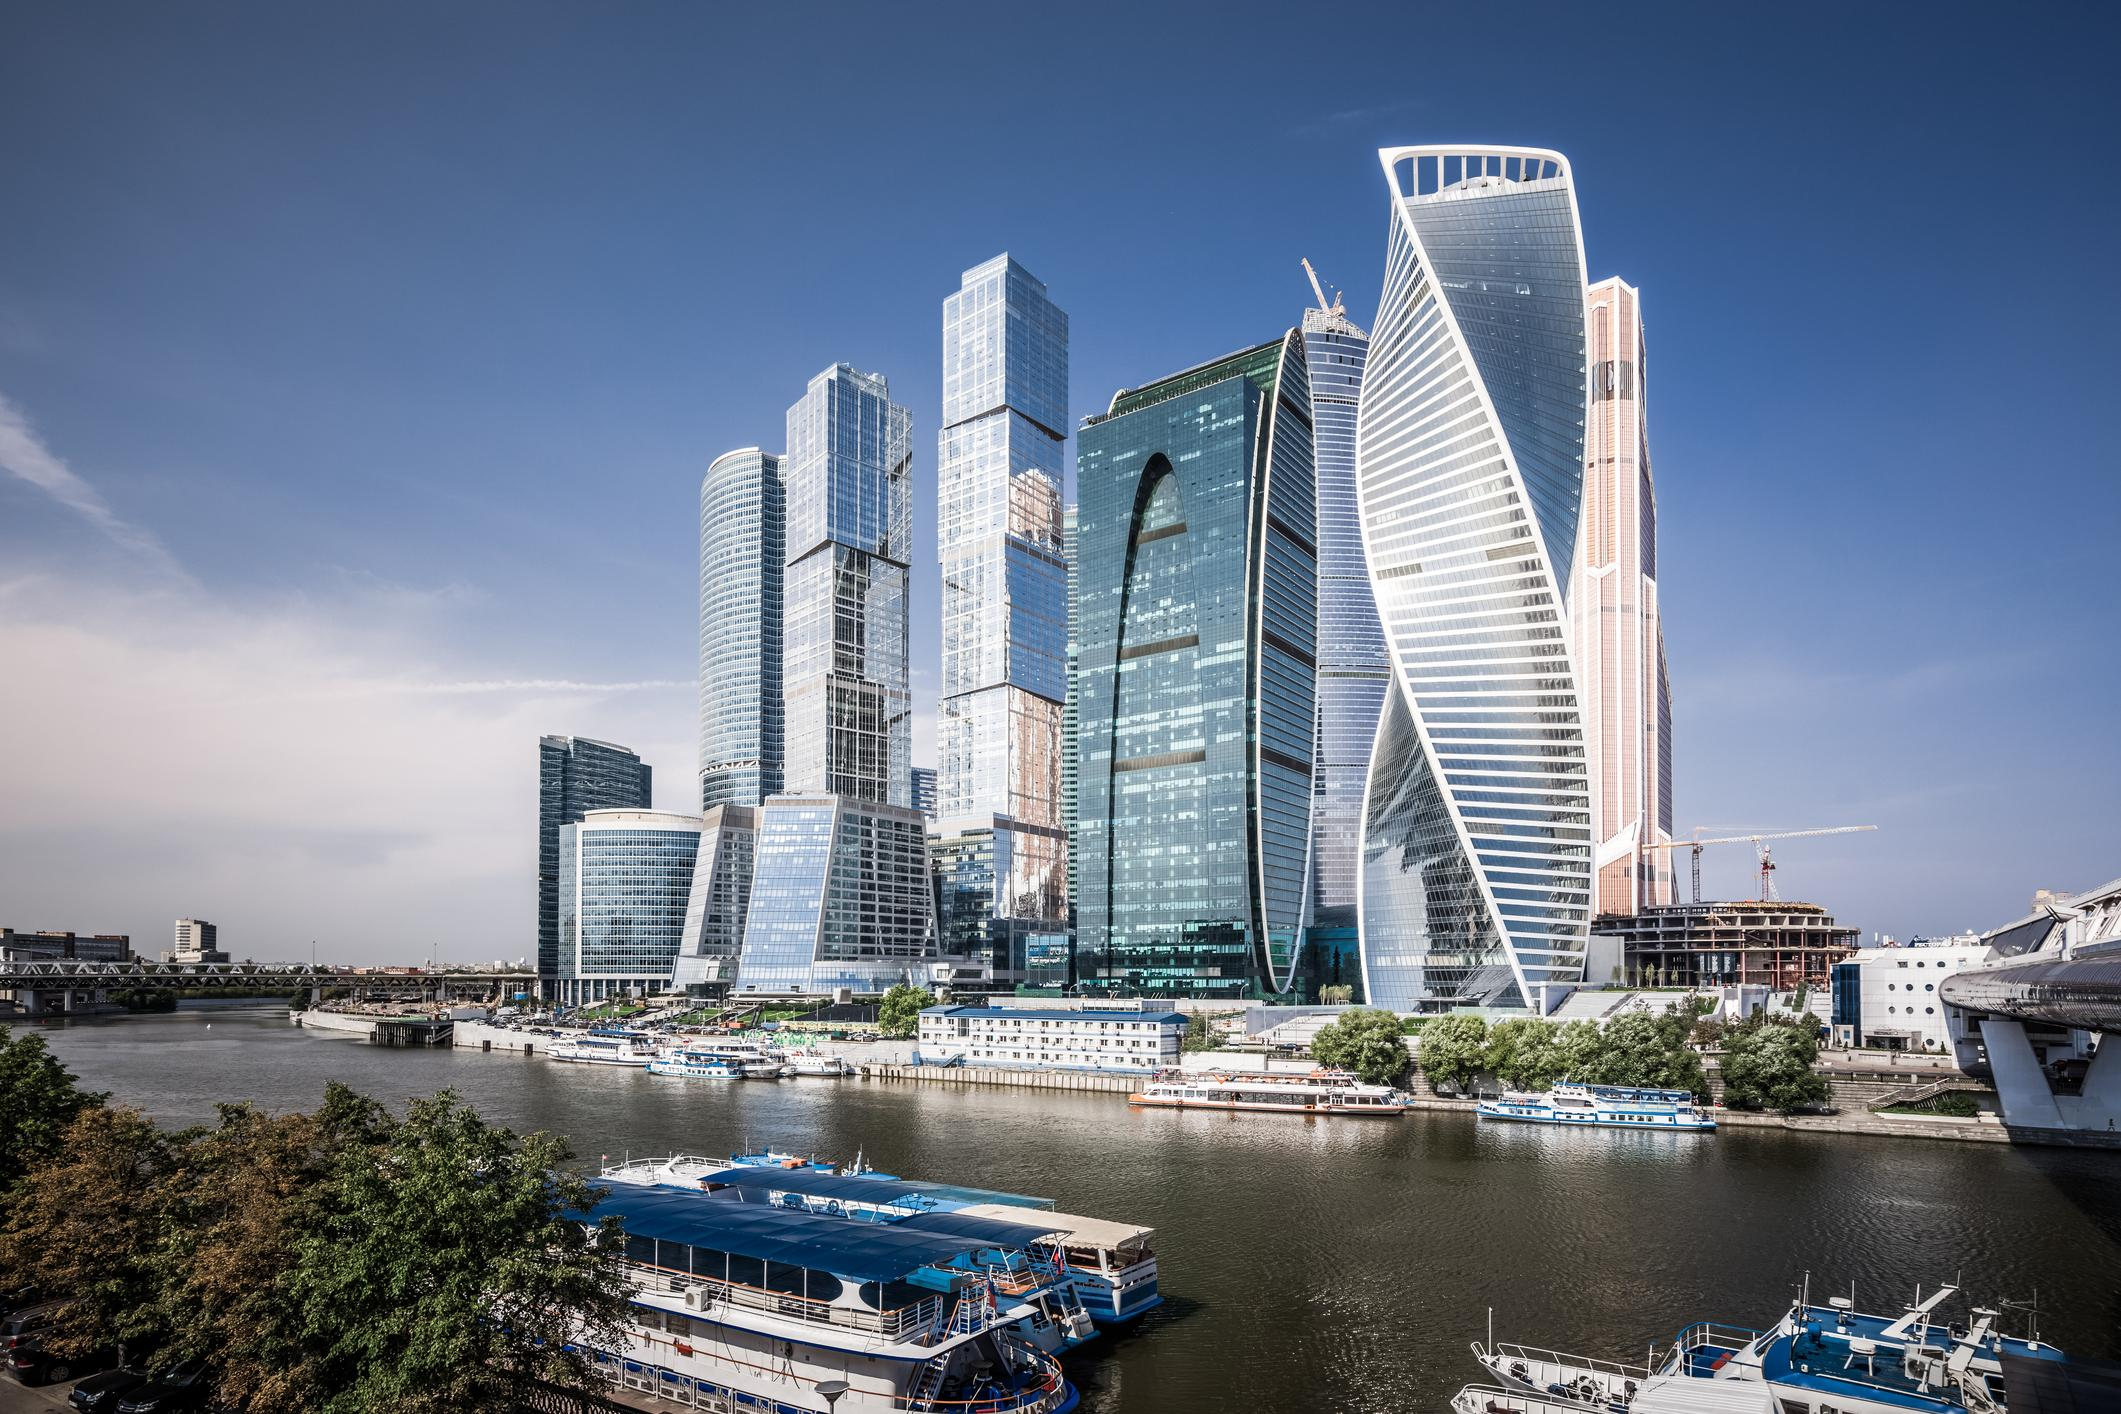 Russia-Skyline-Moscow - Thalesgroup